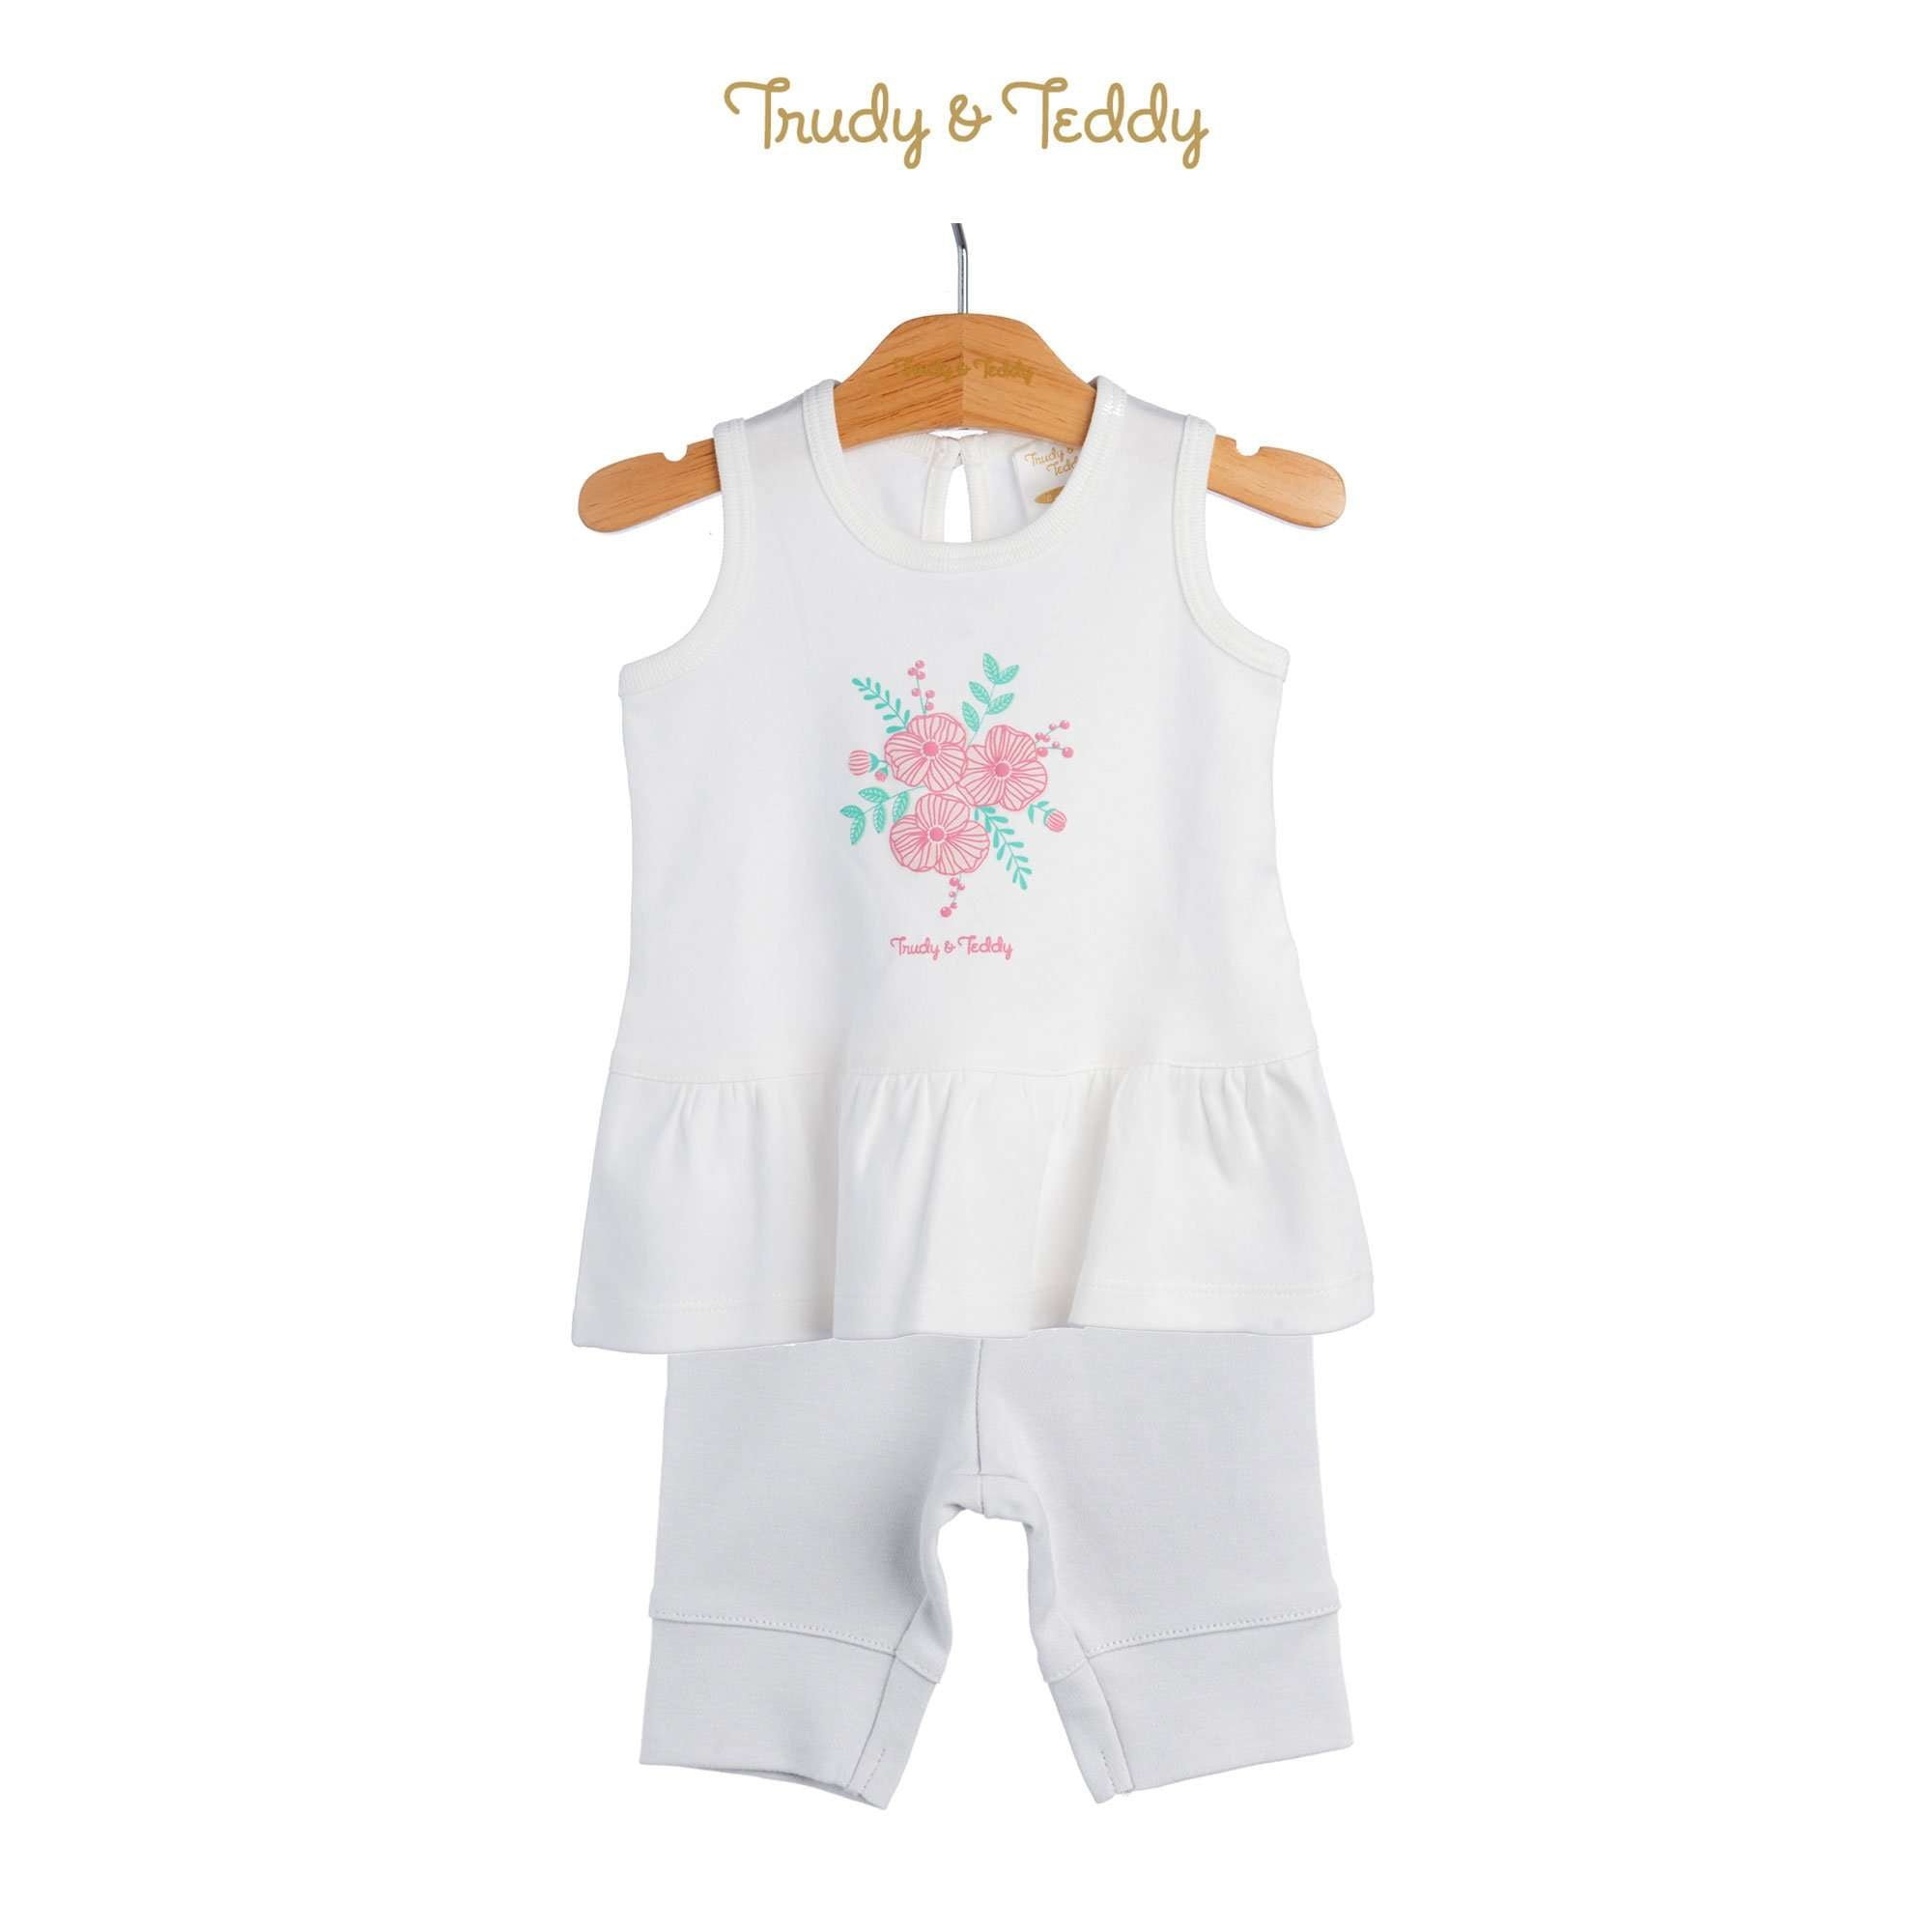 Trudy & Teddy Baby Girl Sleeveless Bermuda Suit 820043-403 : Buy Trudy & Teddy online at CMG.MY